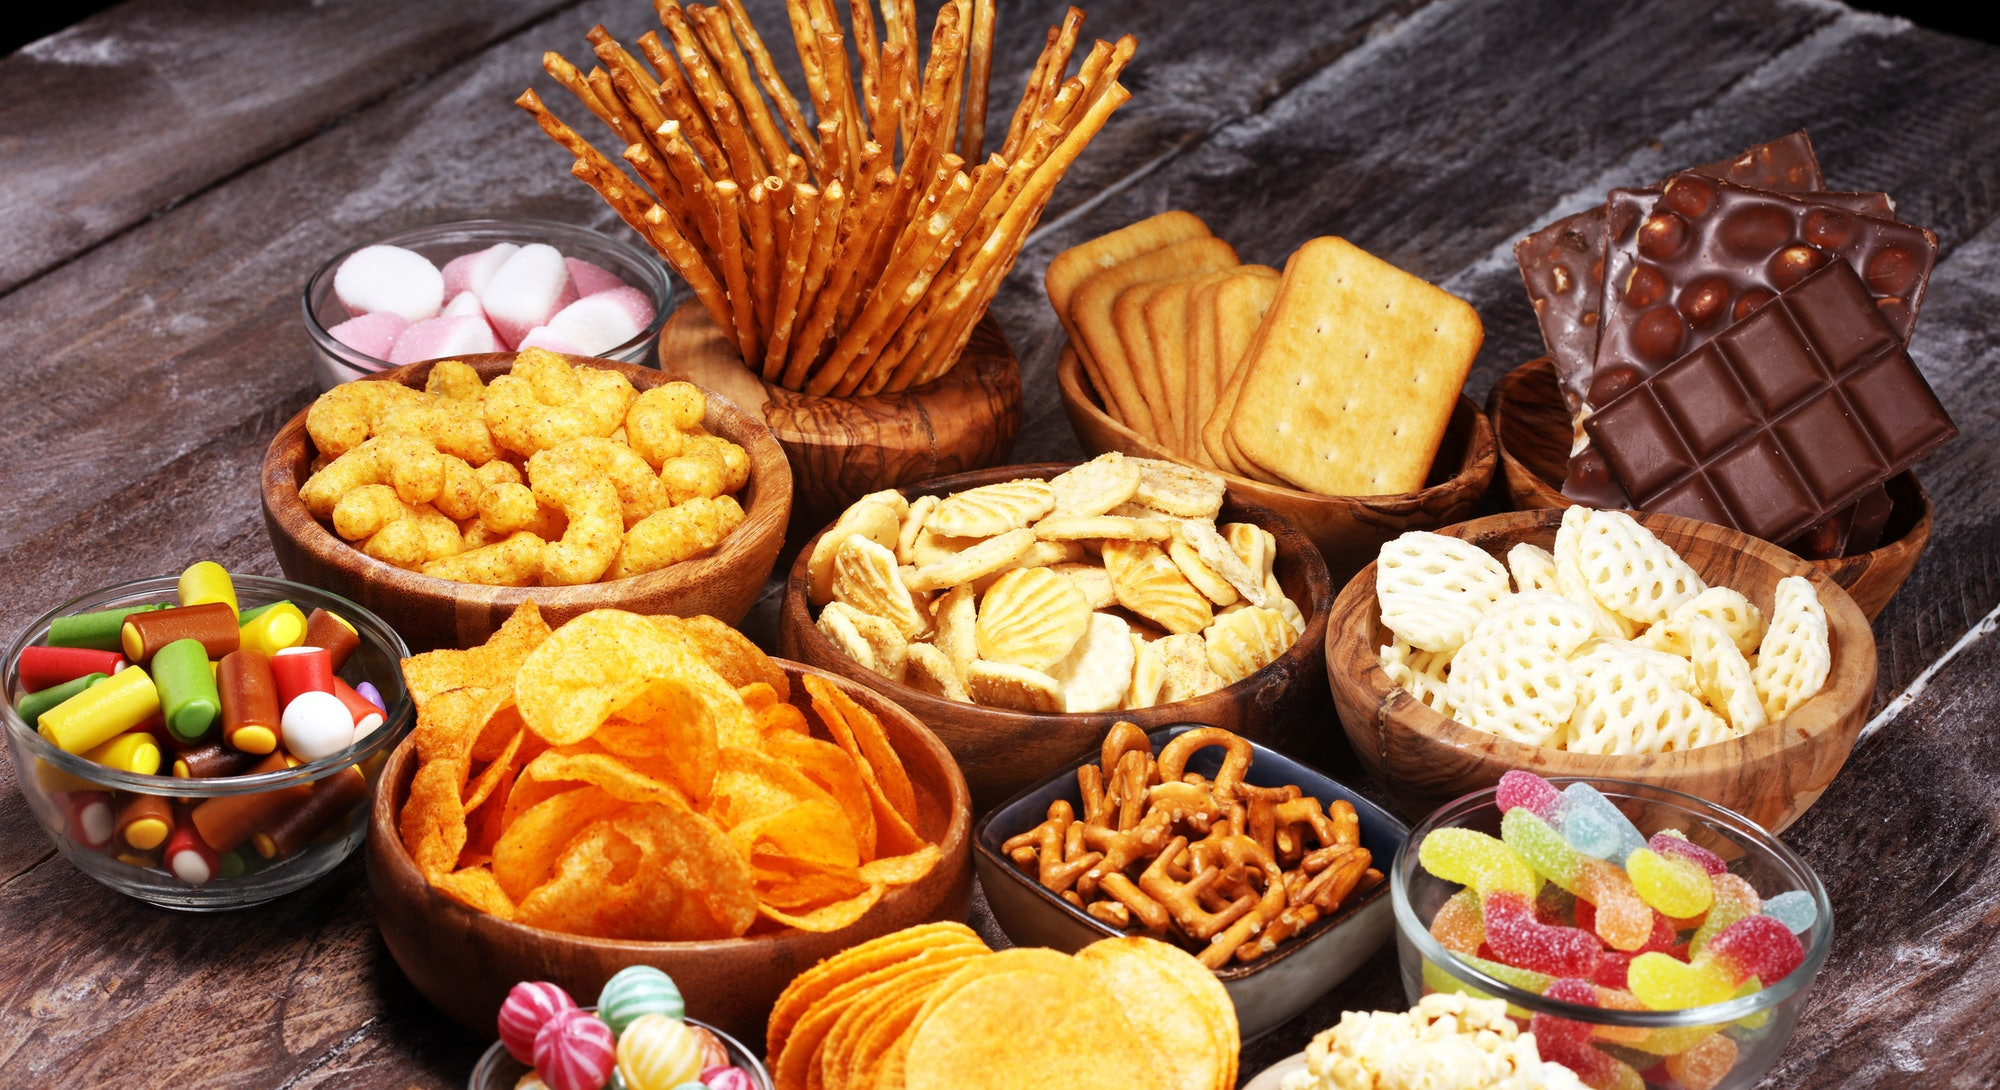 Salty snacks. Pretzels, chips, crackers in wooden bowls. Unhealthy products. food bad for figure, sk...